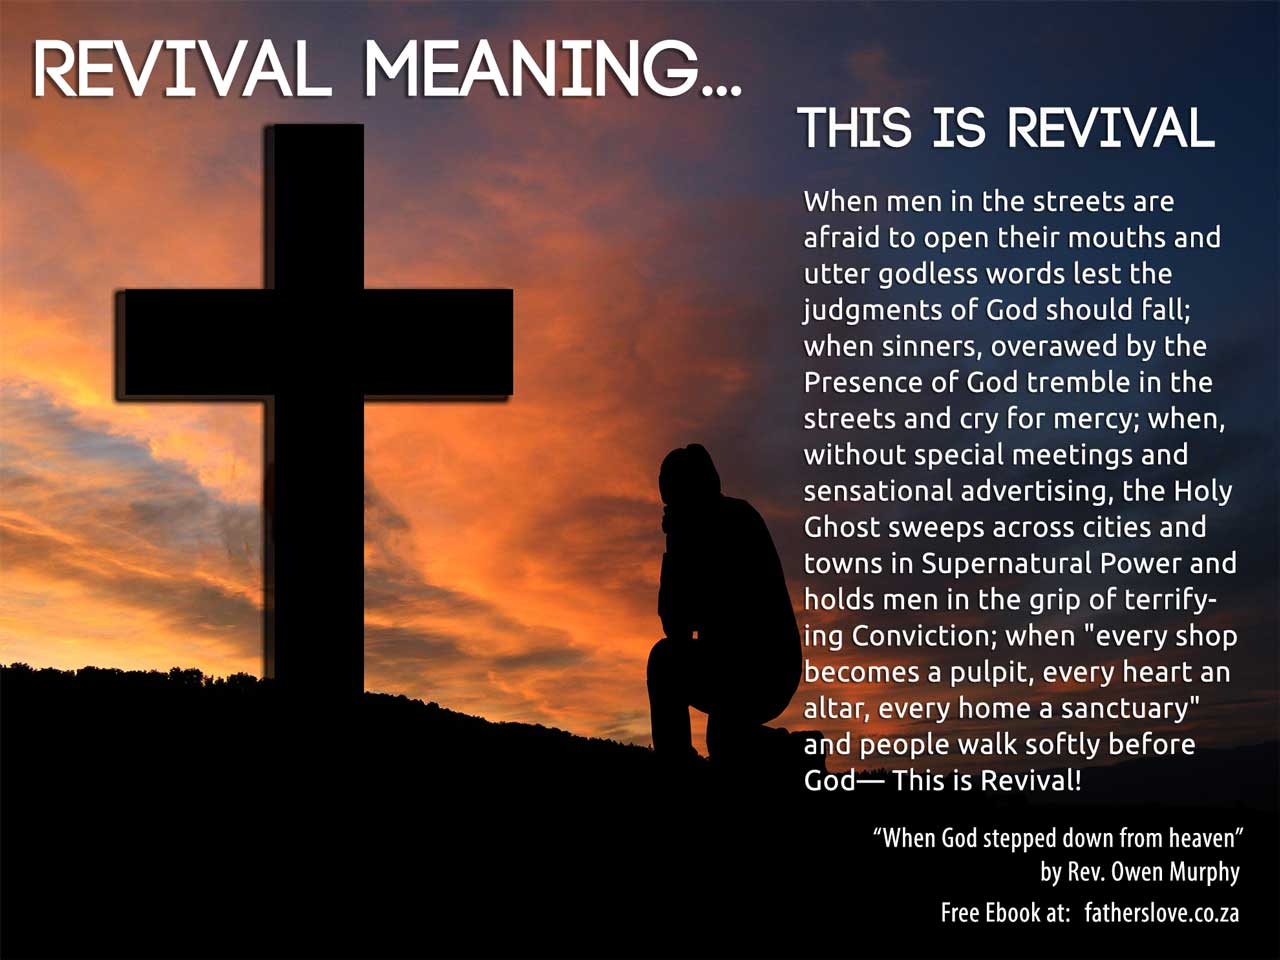 What is the menaing of revival